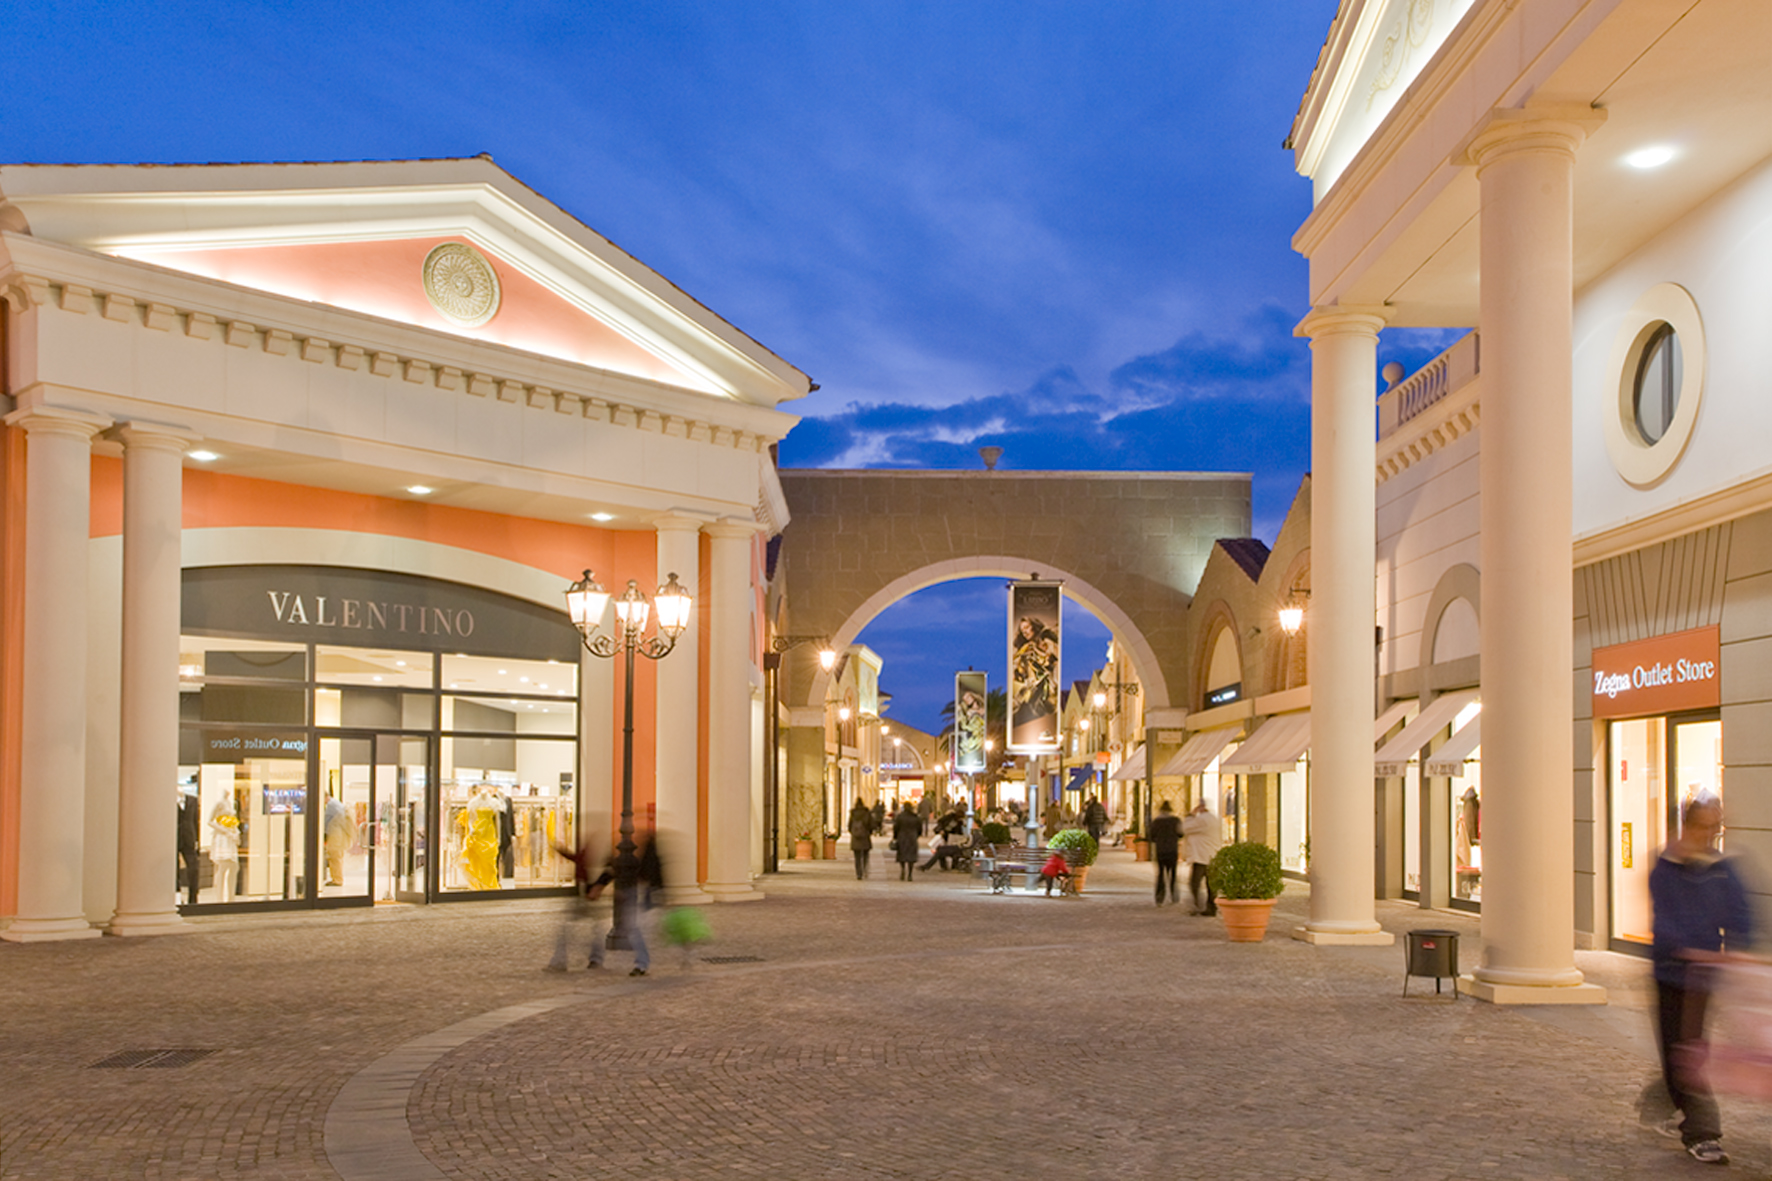 Welcome to Stanford Shopping Center, Northern California's premier open-air shopping and dining destination with Bloomingdale's, Macy's, Nordstrom, Neiman Marcus, Wilkes Bashford and more than world-class specialty stores, ranging from luxury brands to local favorites.